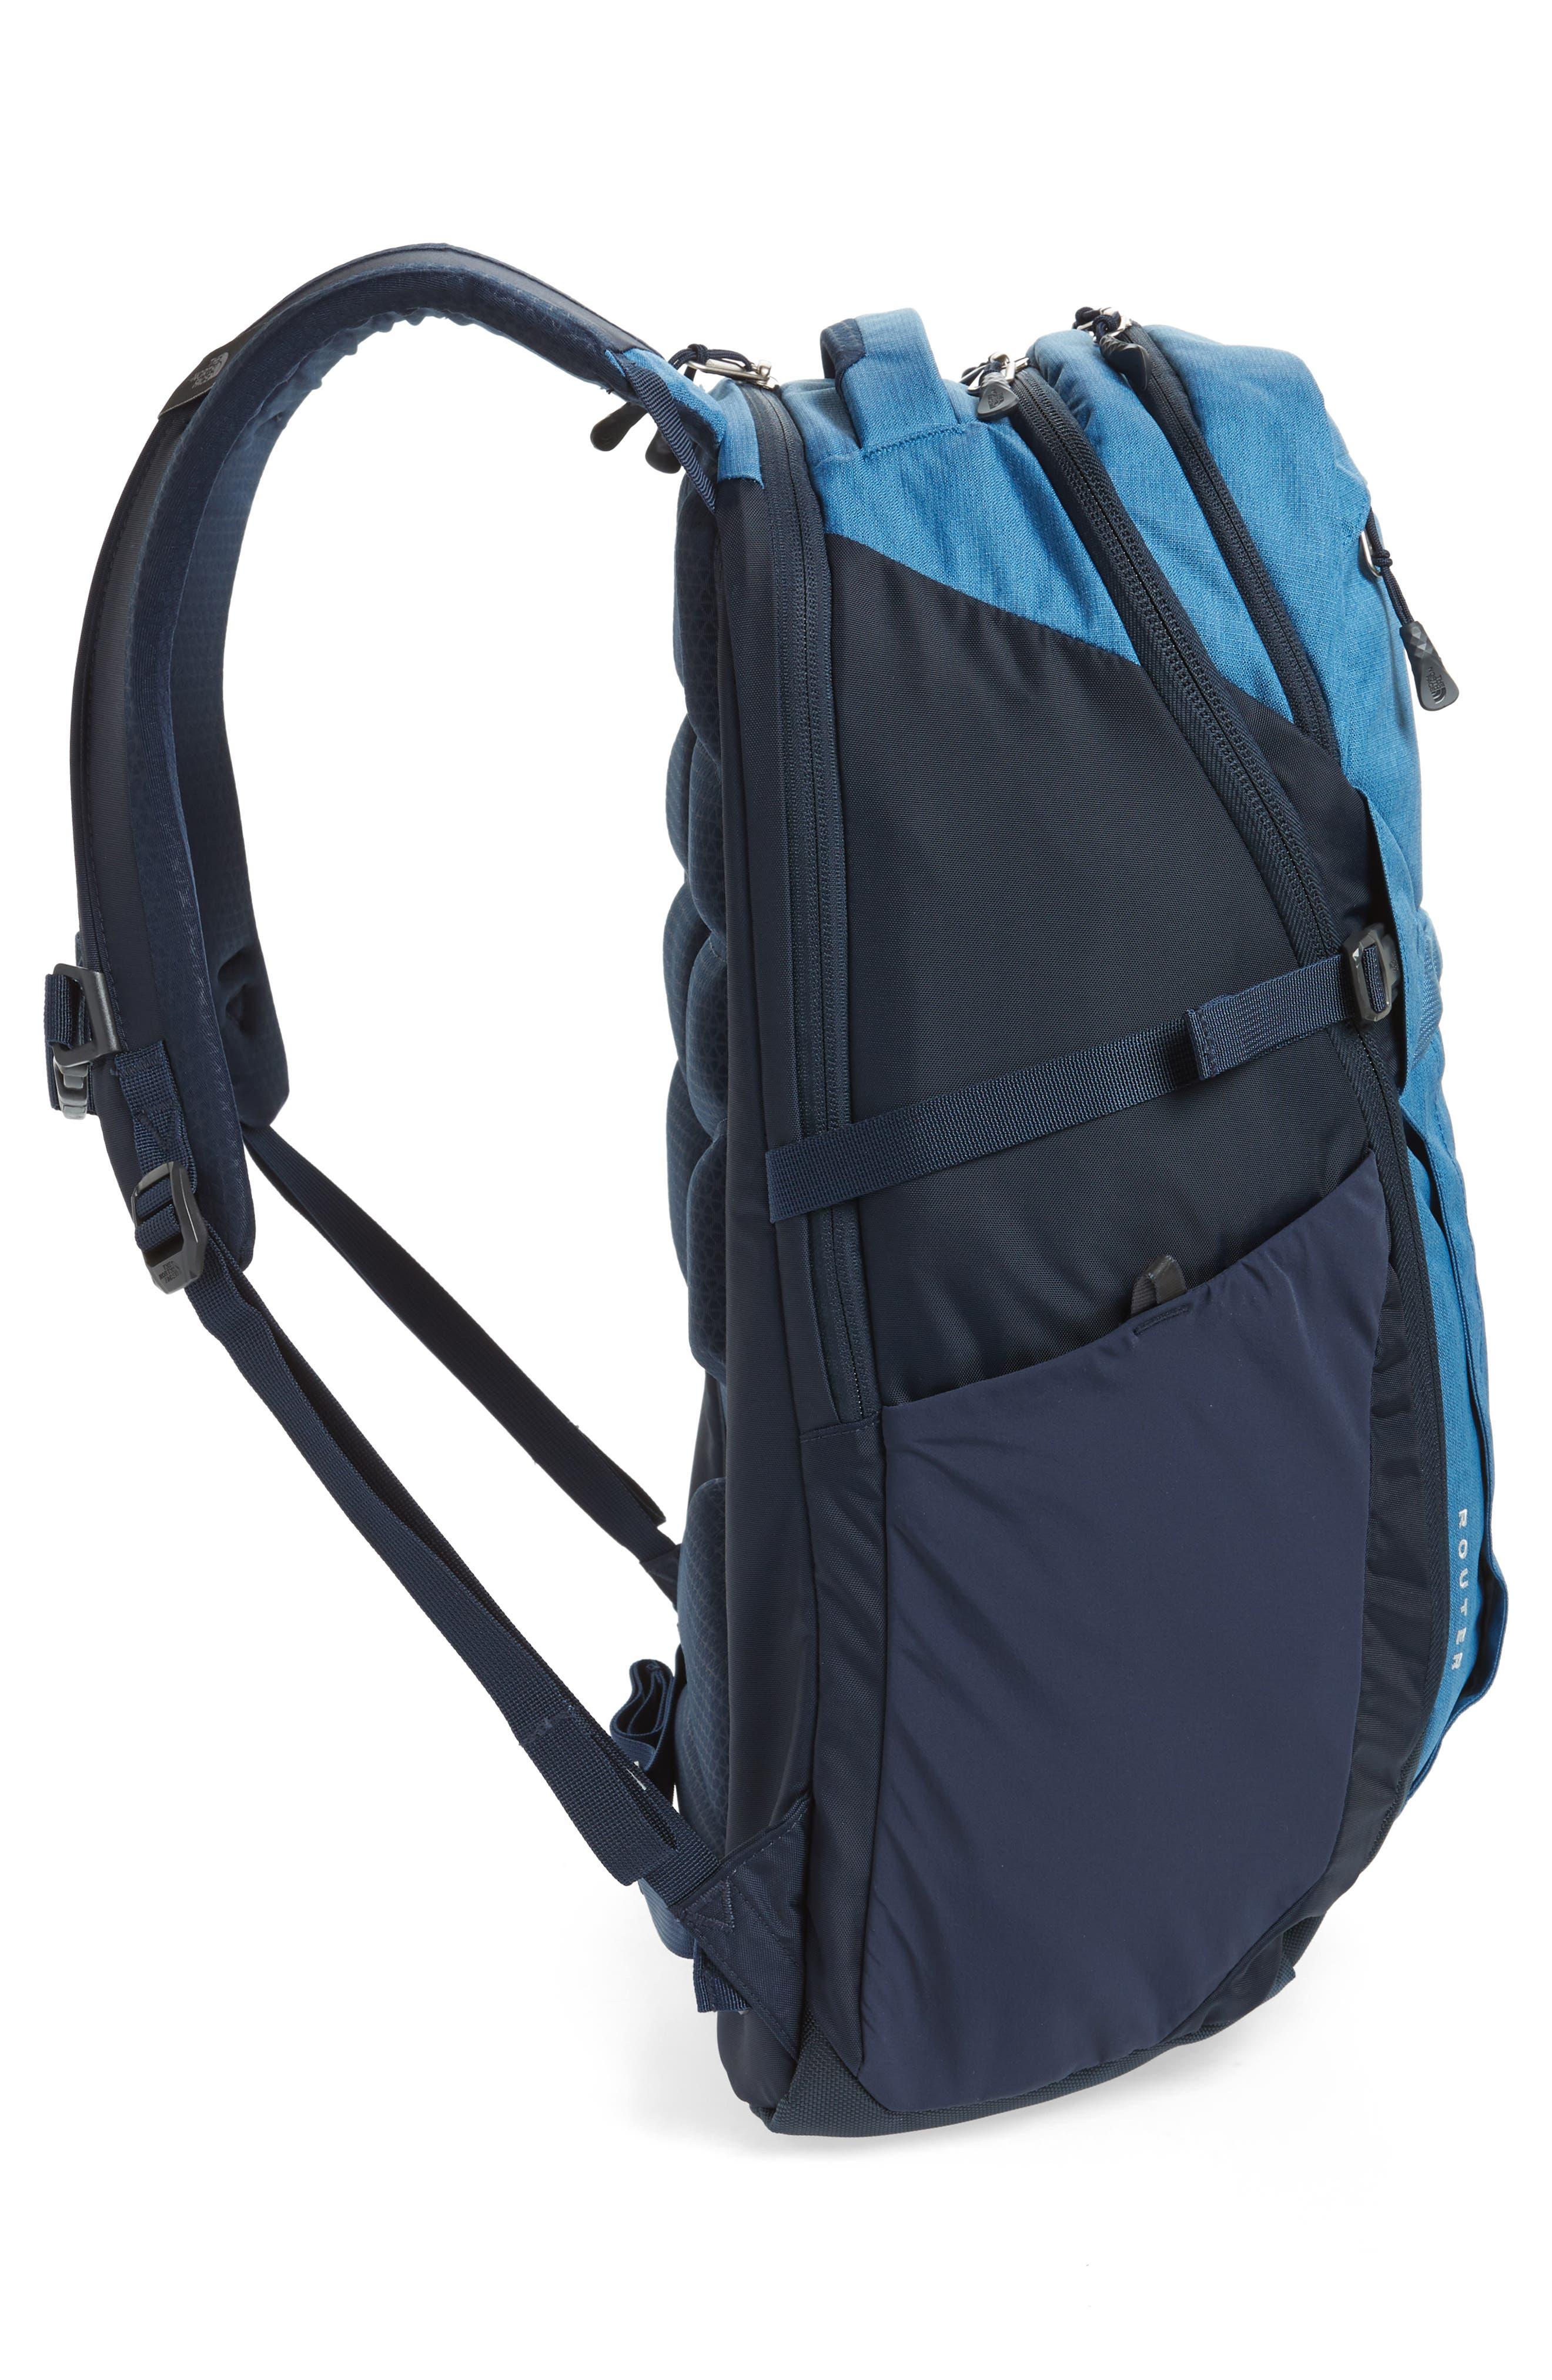 Router Backpack,                             Alternate thumbnail 5, color,                             DISH BLUE HEATHER/ URBAN NAVY